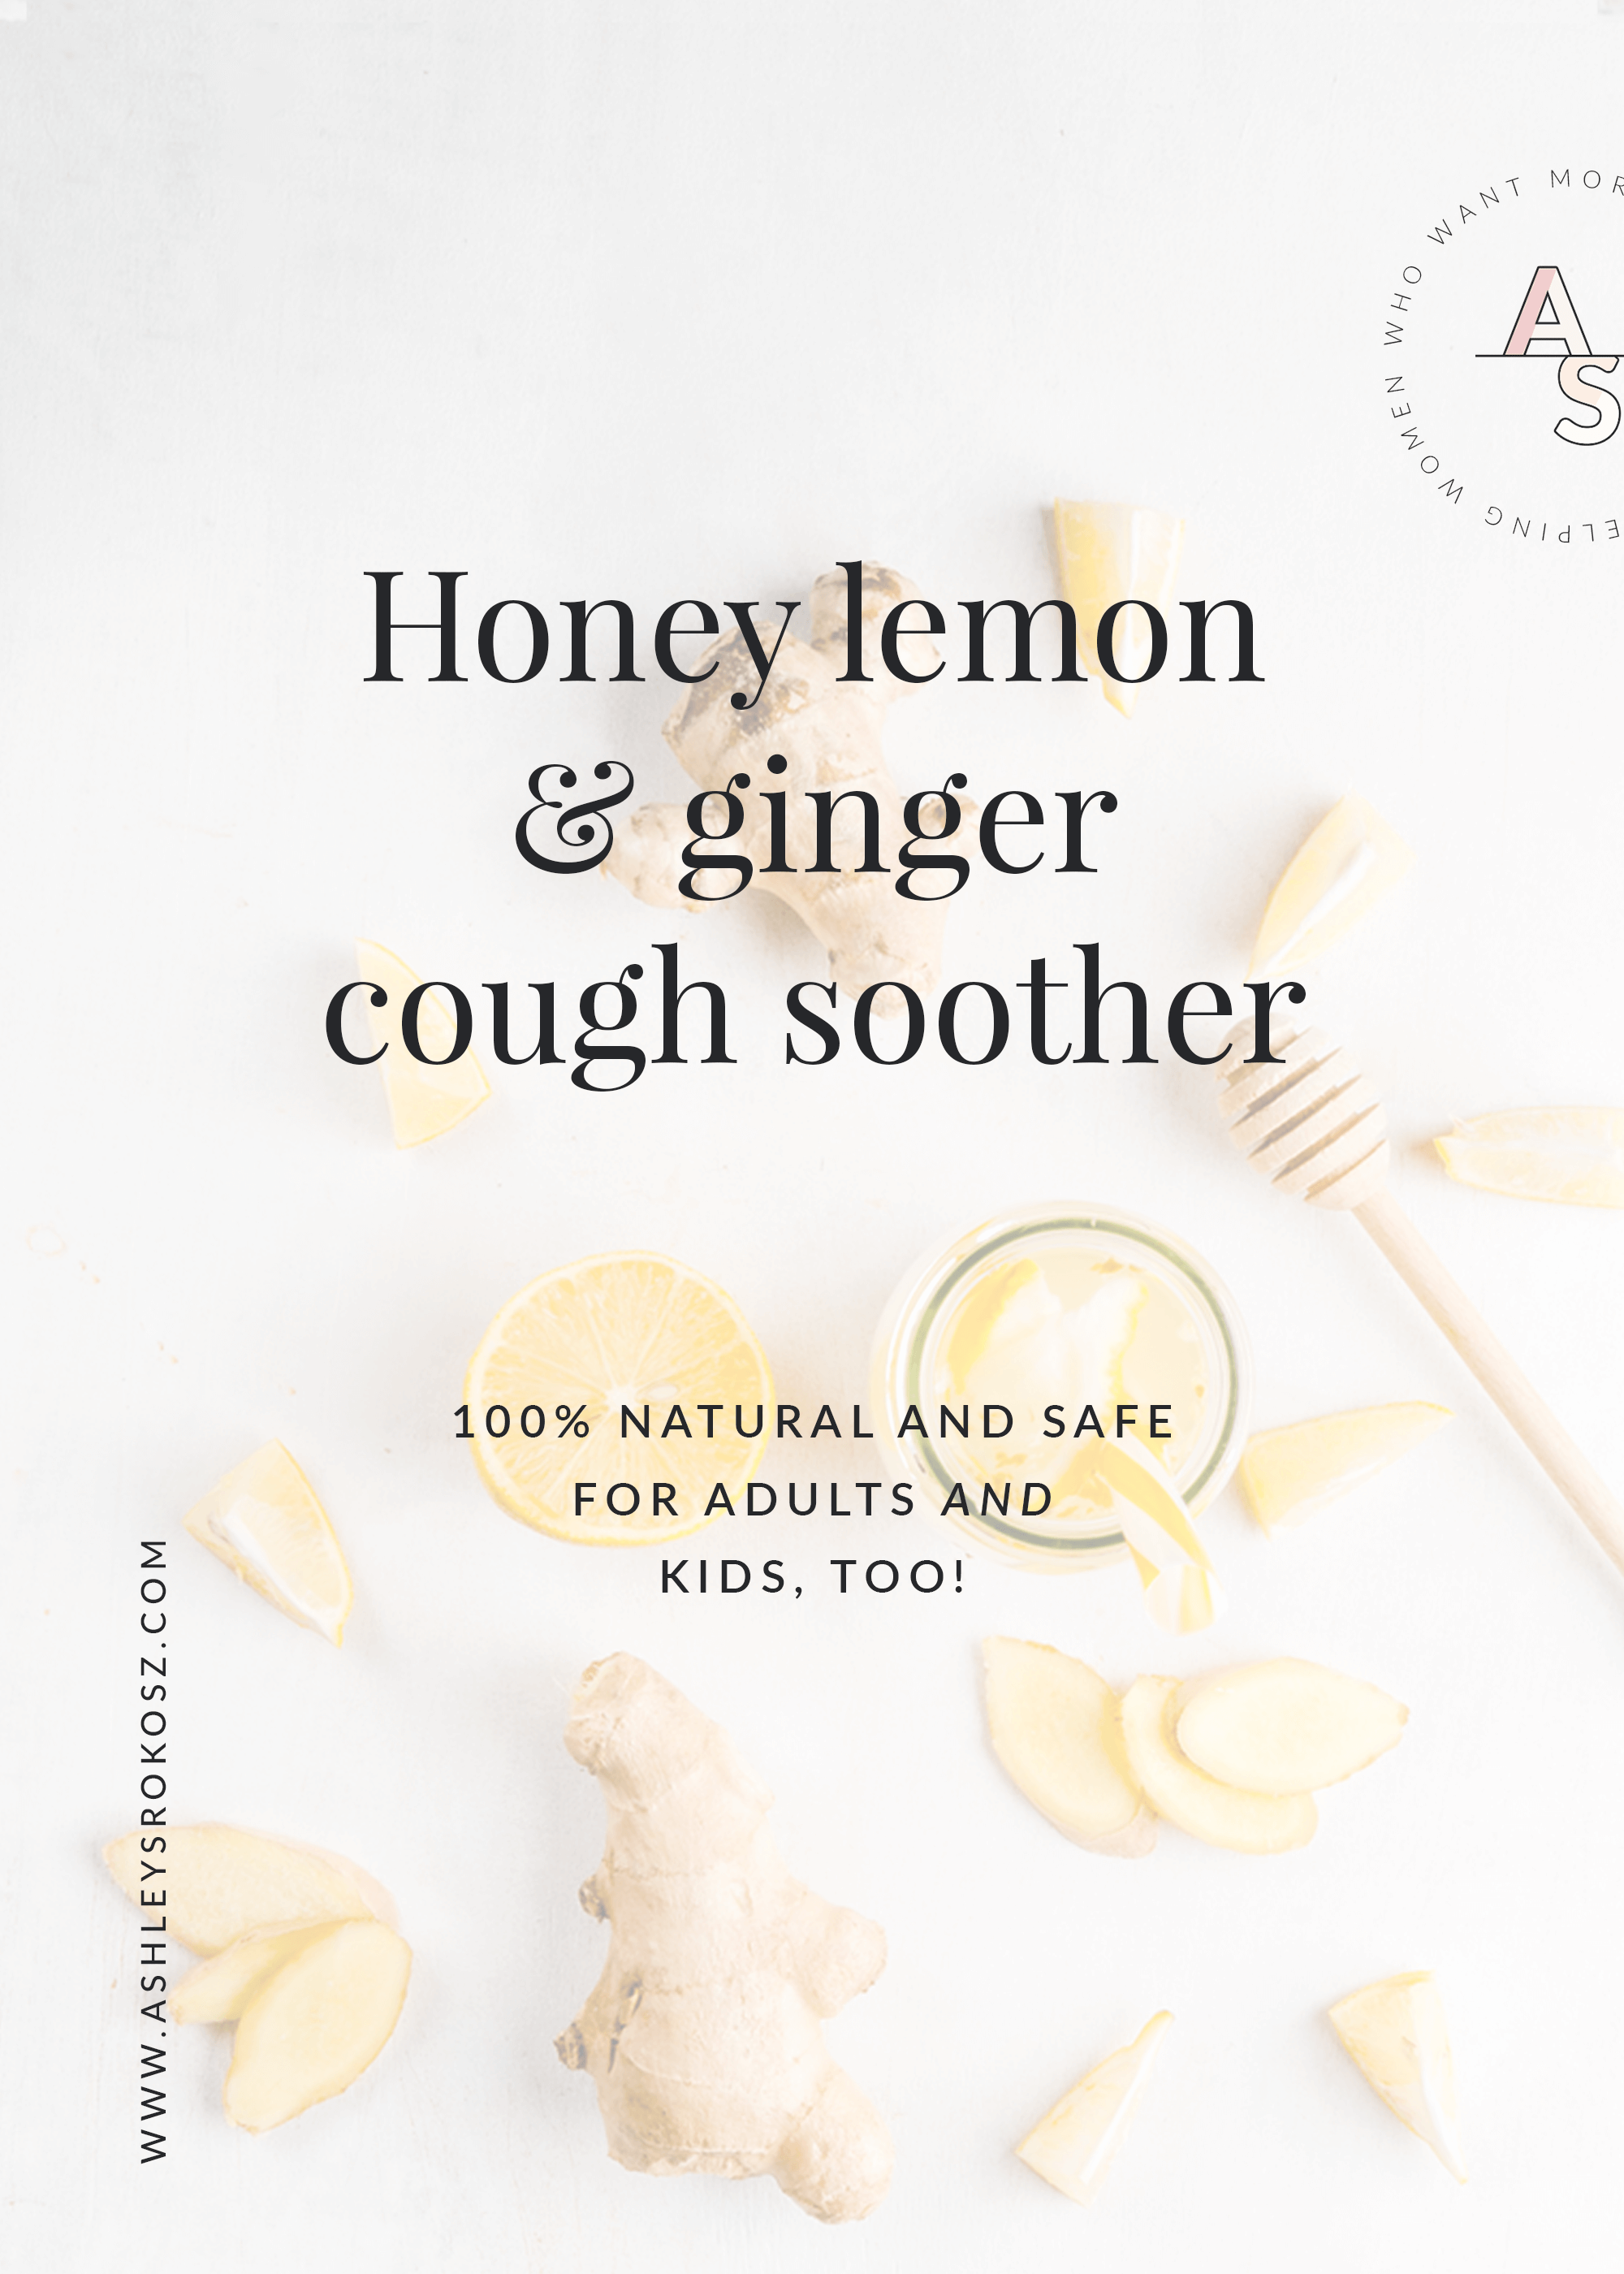 Have a cough that just won't go away? Are you kids coughing all night and you can't get any sleep? Try this recipe for the best natural cough syrup that actually works. #coldremedies #coughremedies #coughremediesforkids #coughessentialoils #getridofacoldfast